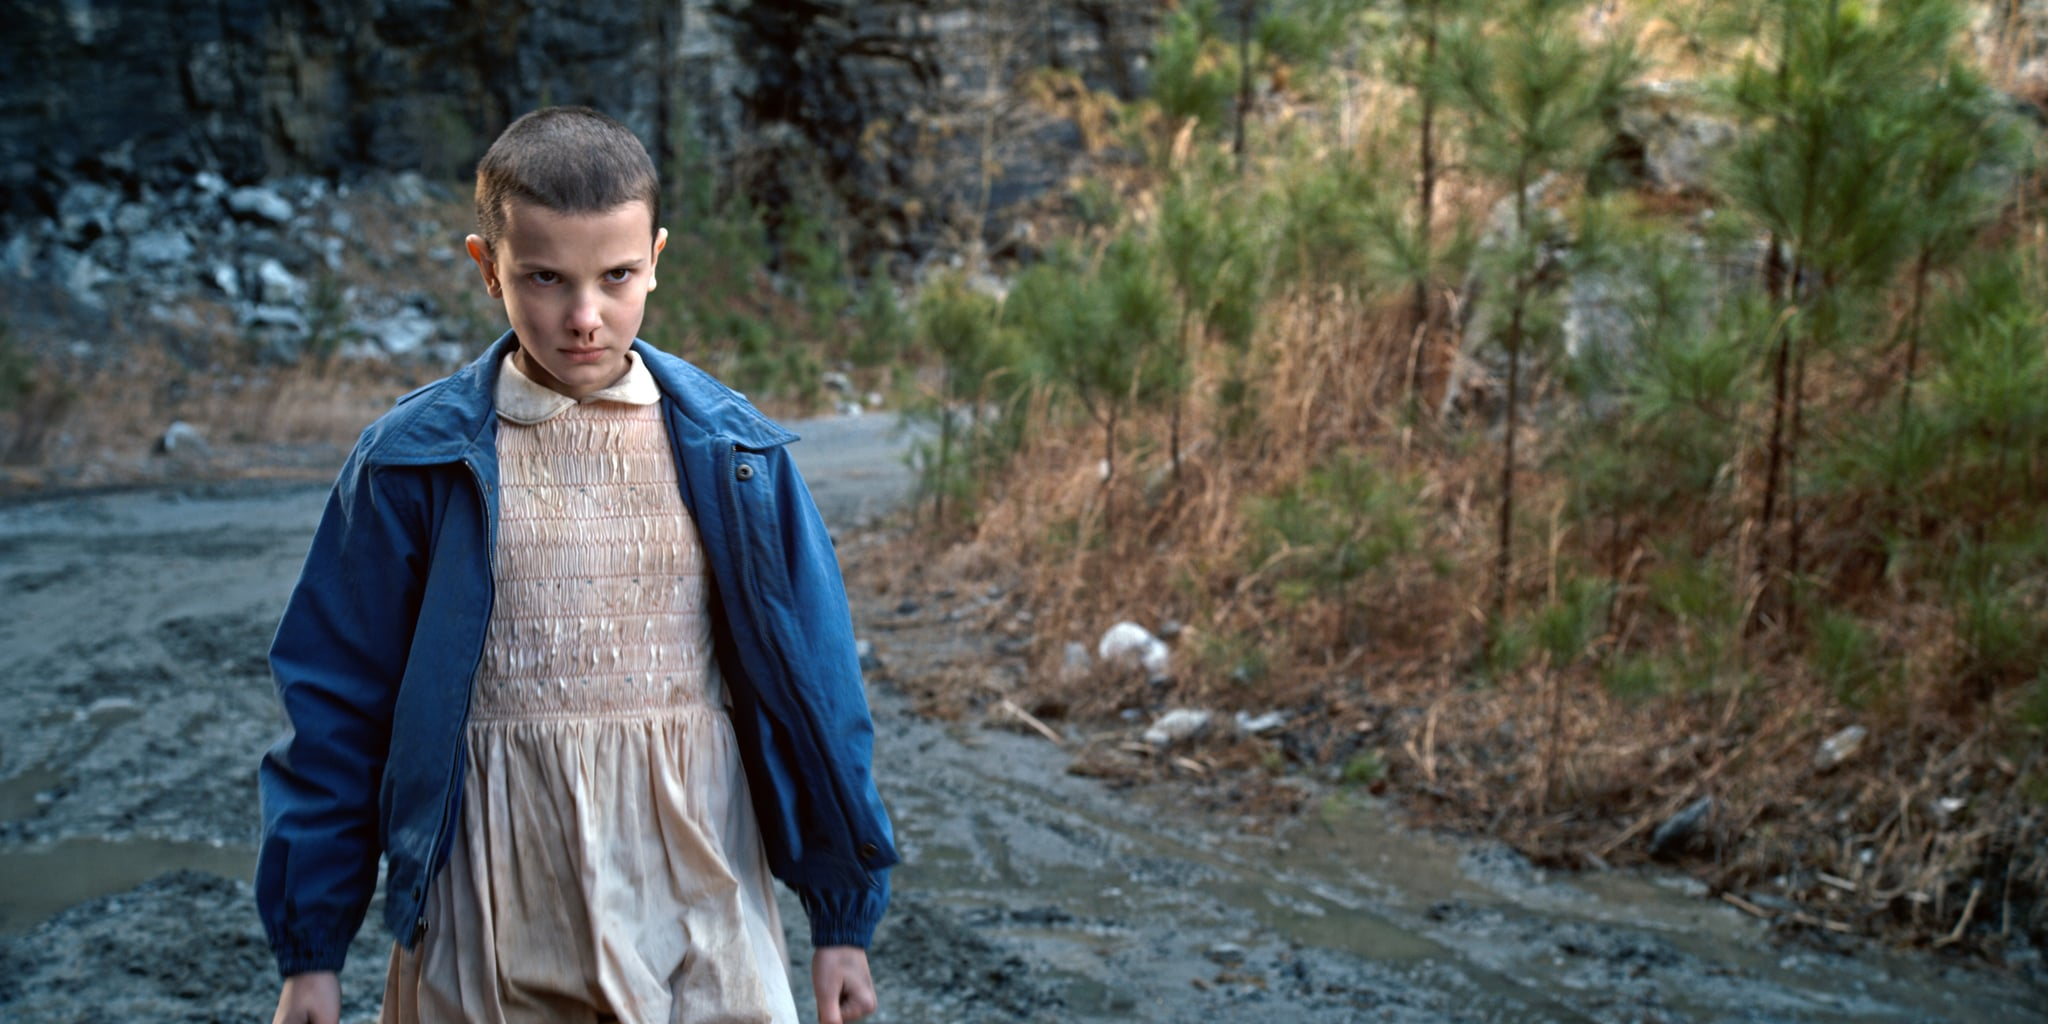 Is Stranger Things Based on a True Story? | POPSUGAR Entertainment